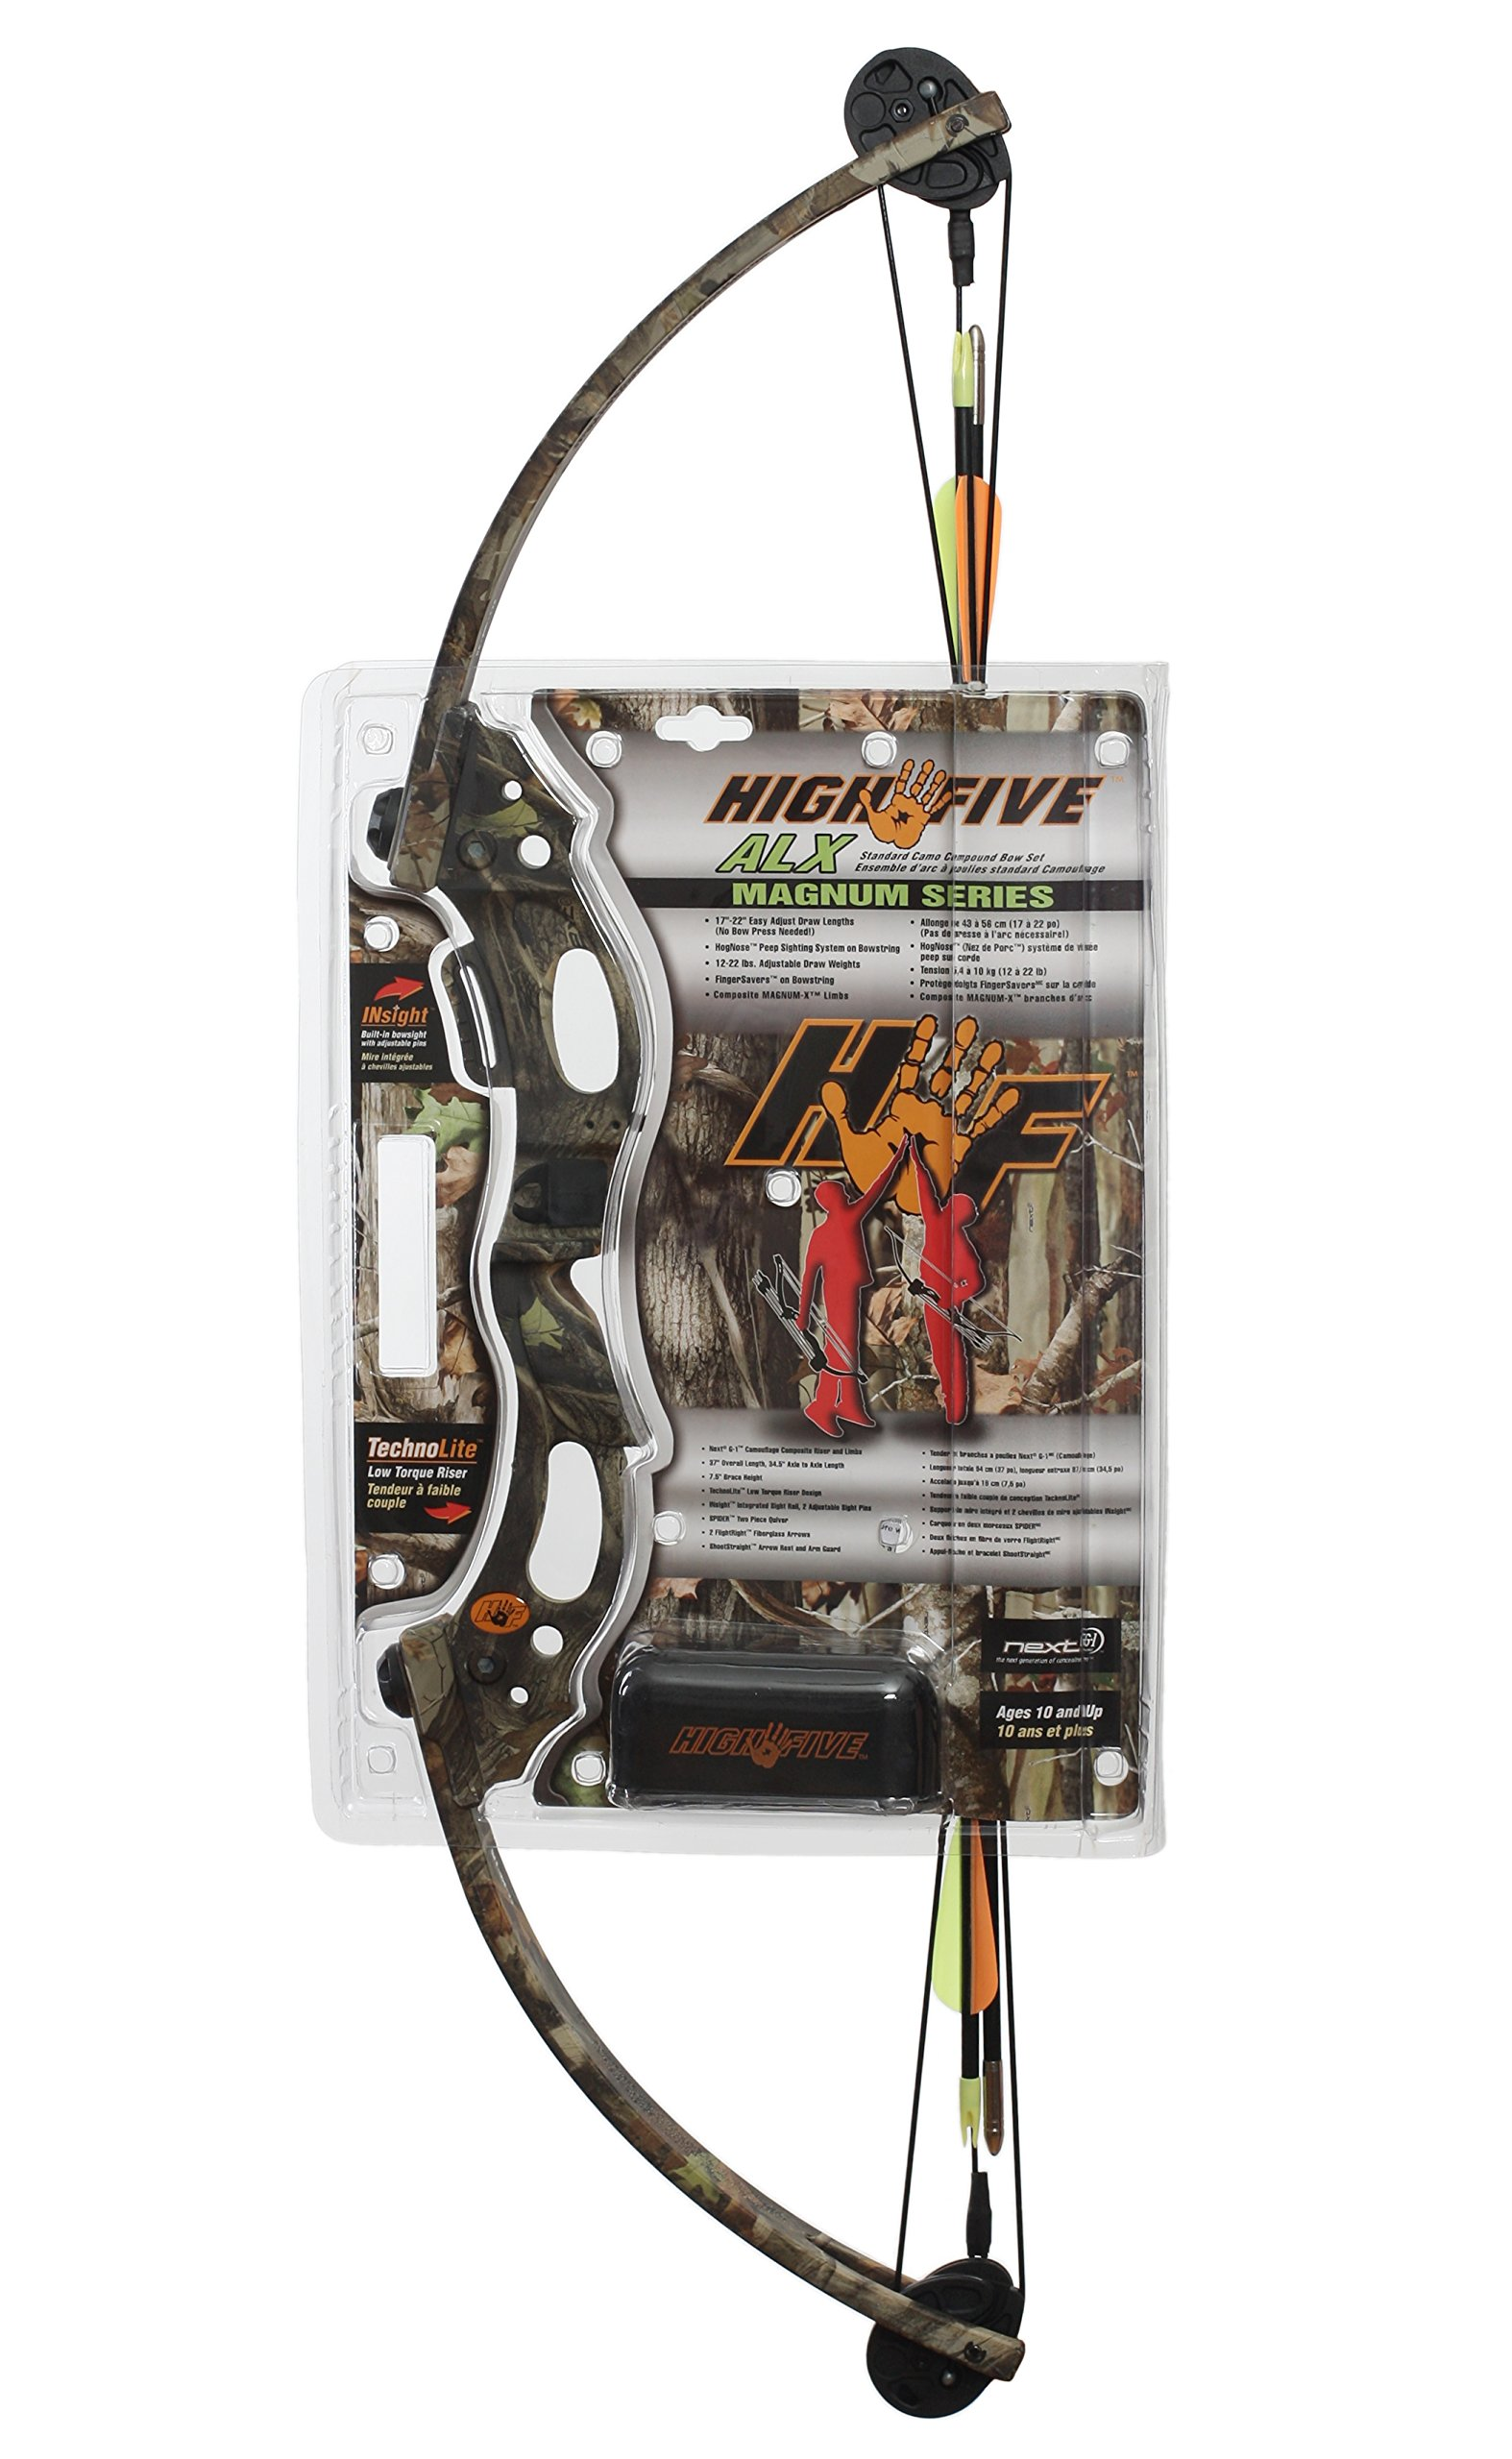 Creative Outdoor High Five 546 ALX Compound Bow Set